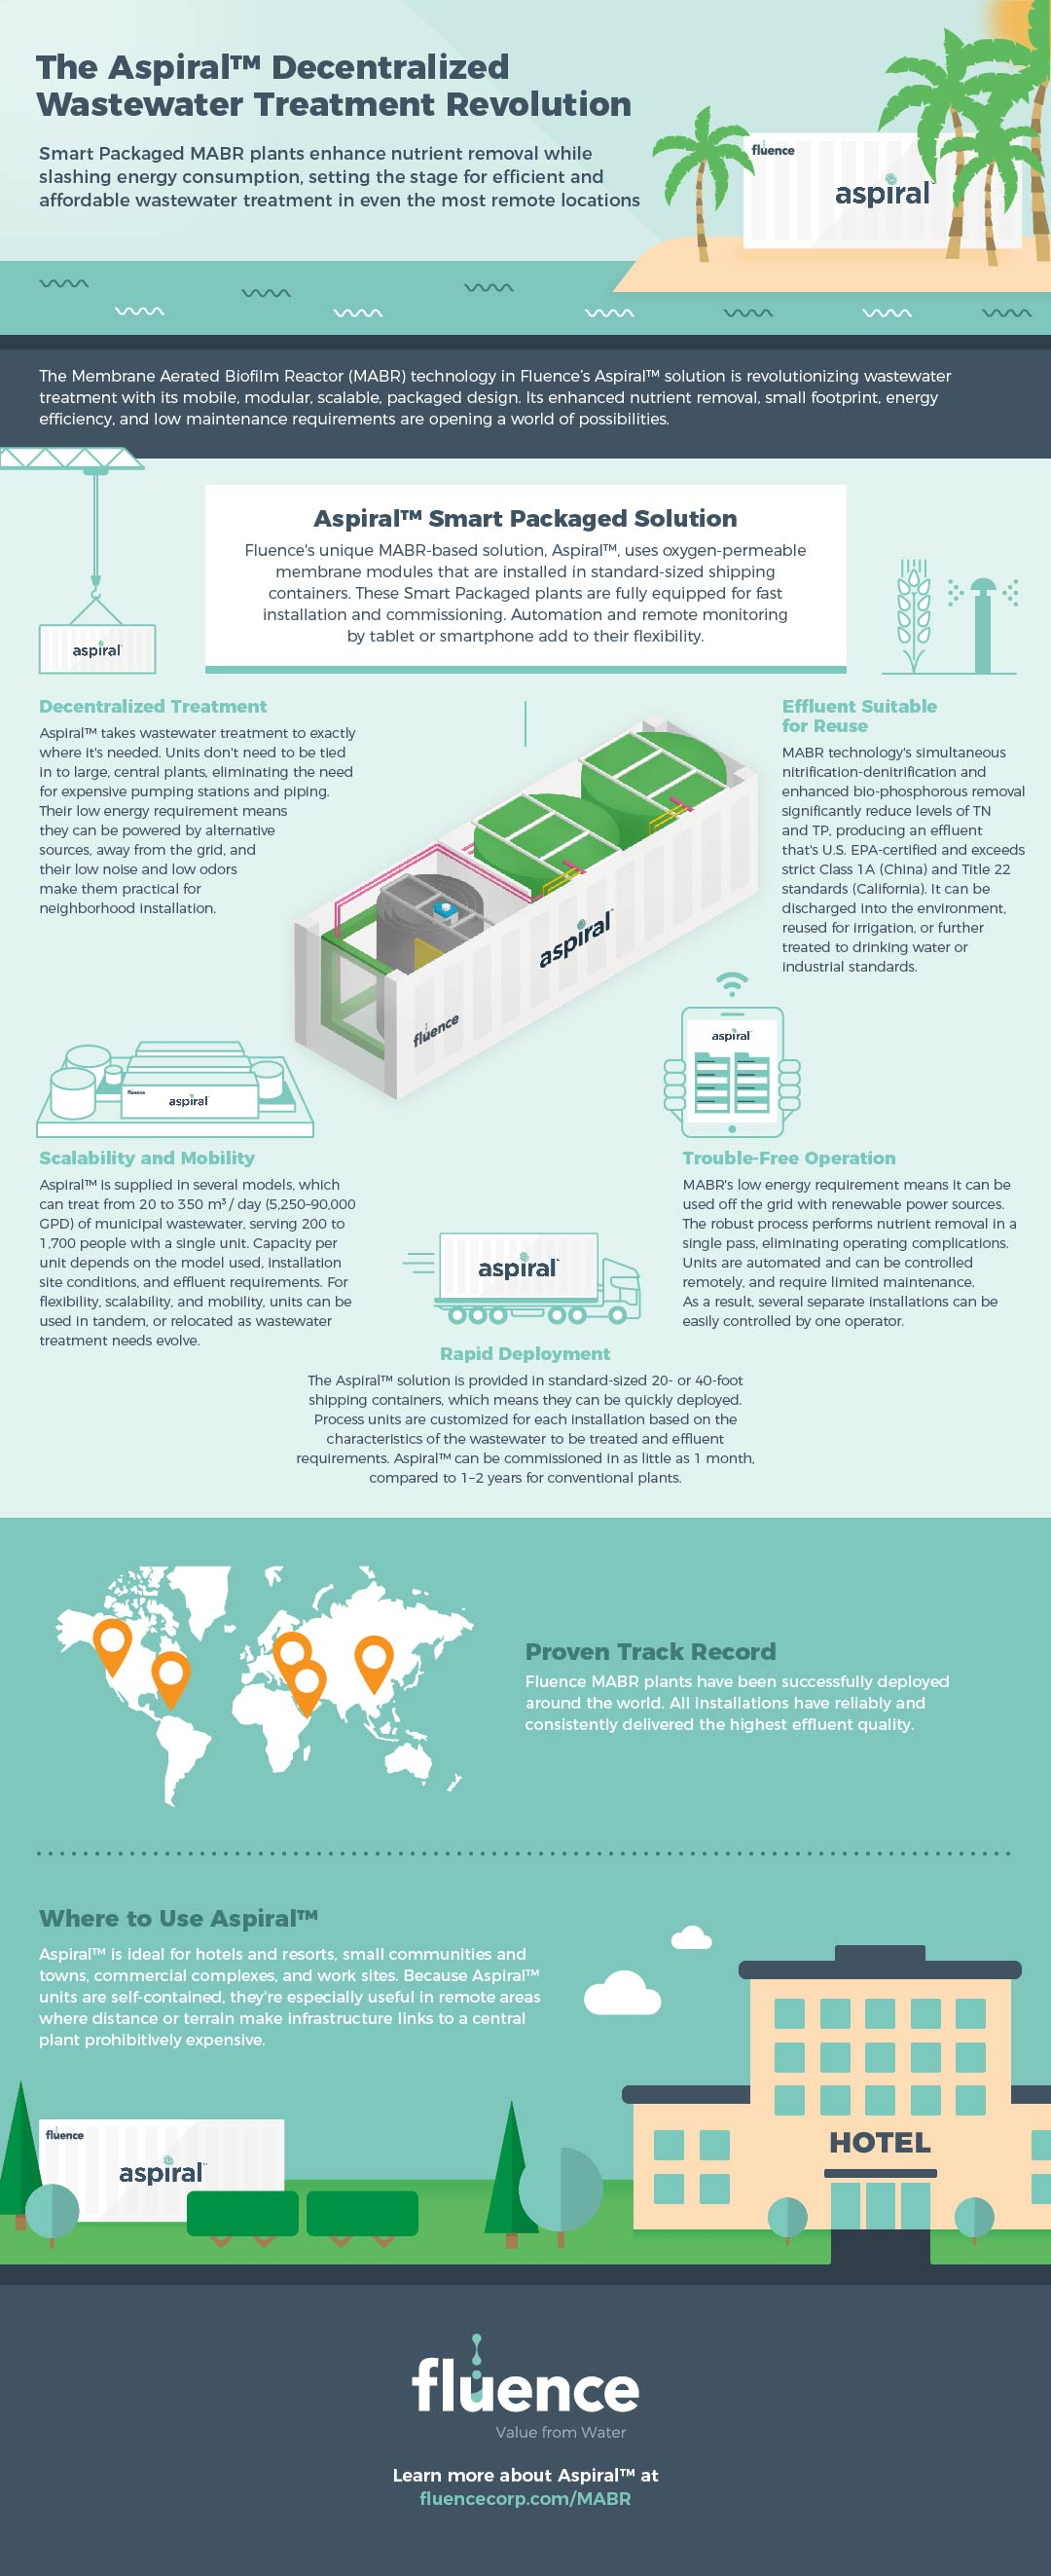 Aspiral Decentralized Wastewater Treatment Infographic